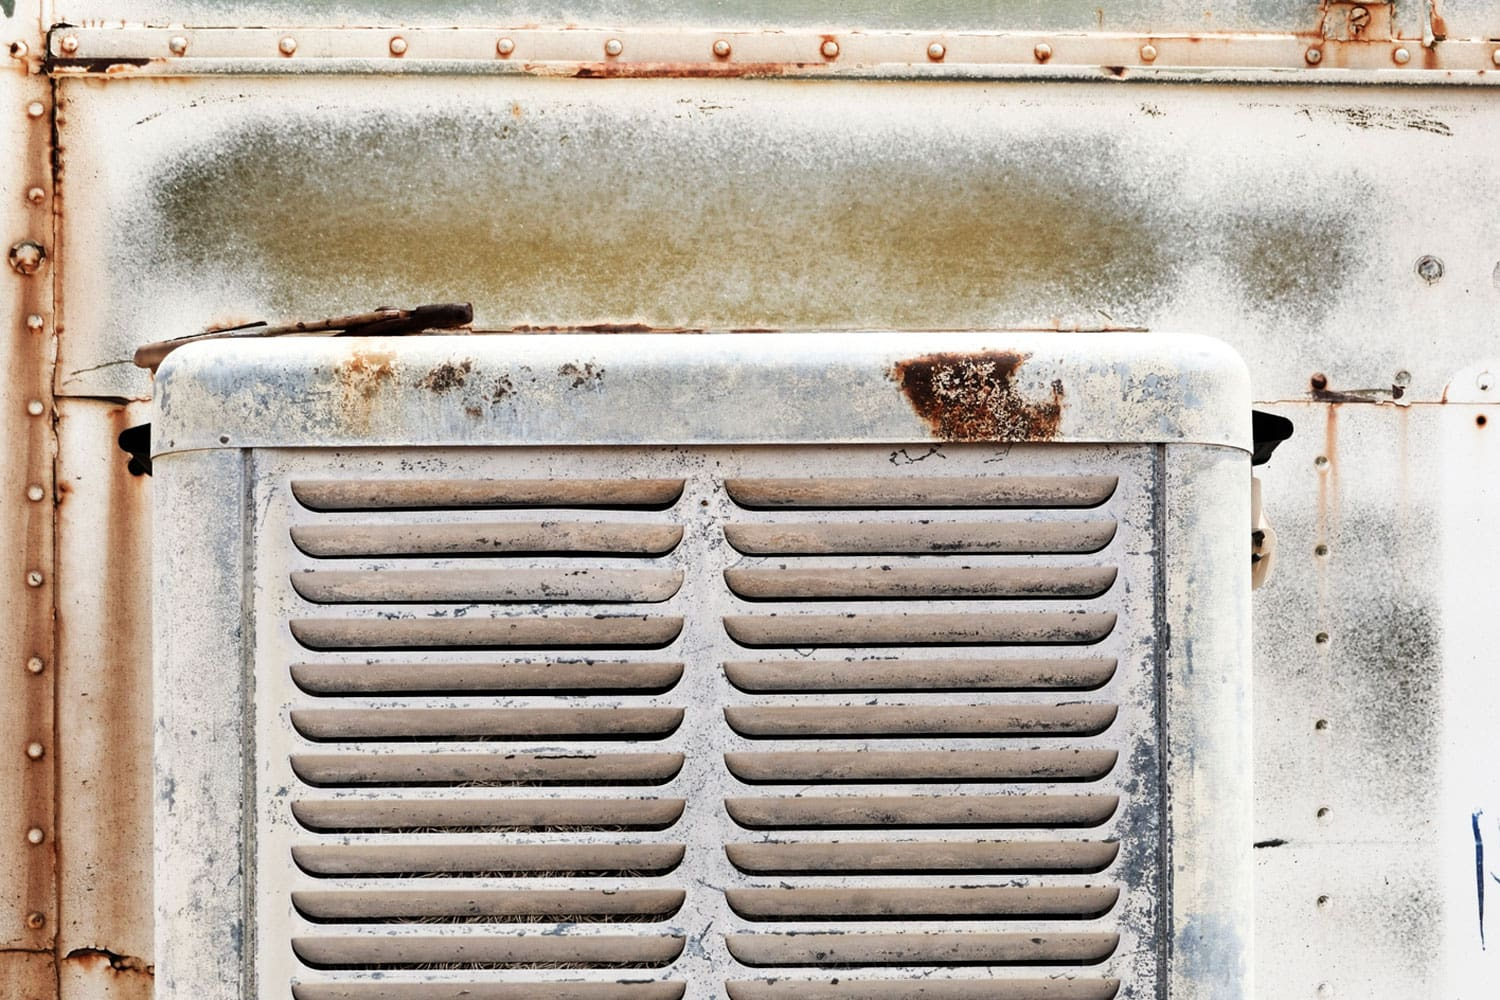 Close up shot of a grungy old thrashed swamp cooler as found in a junkyard in the middle of the desert, How To Remove Rust From An Evaporative Cooler